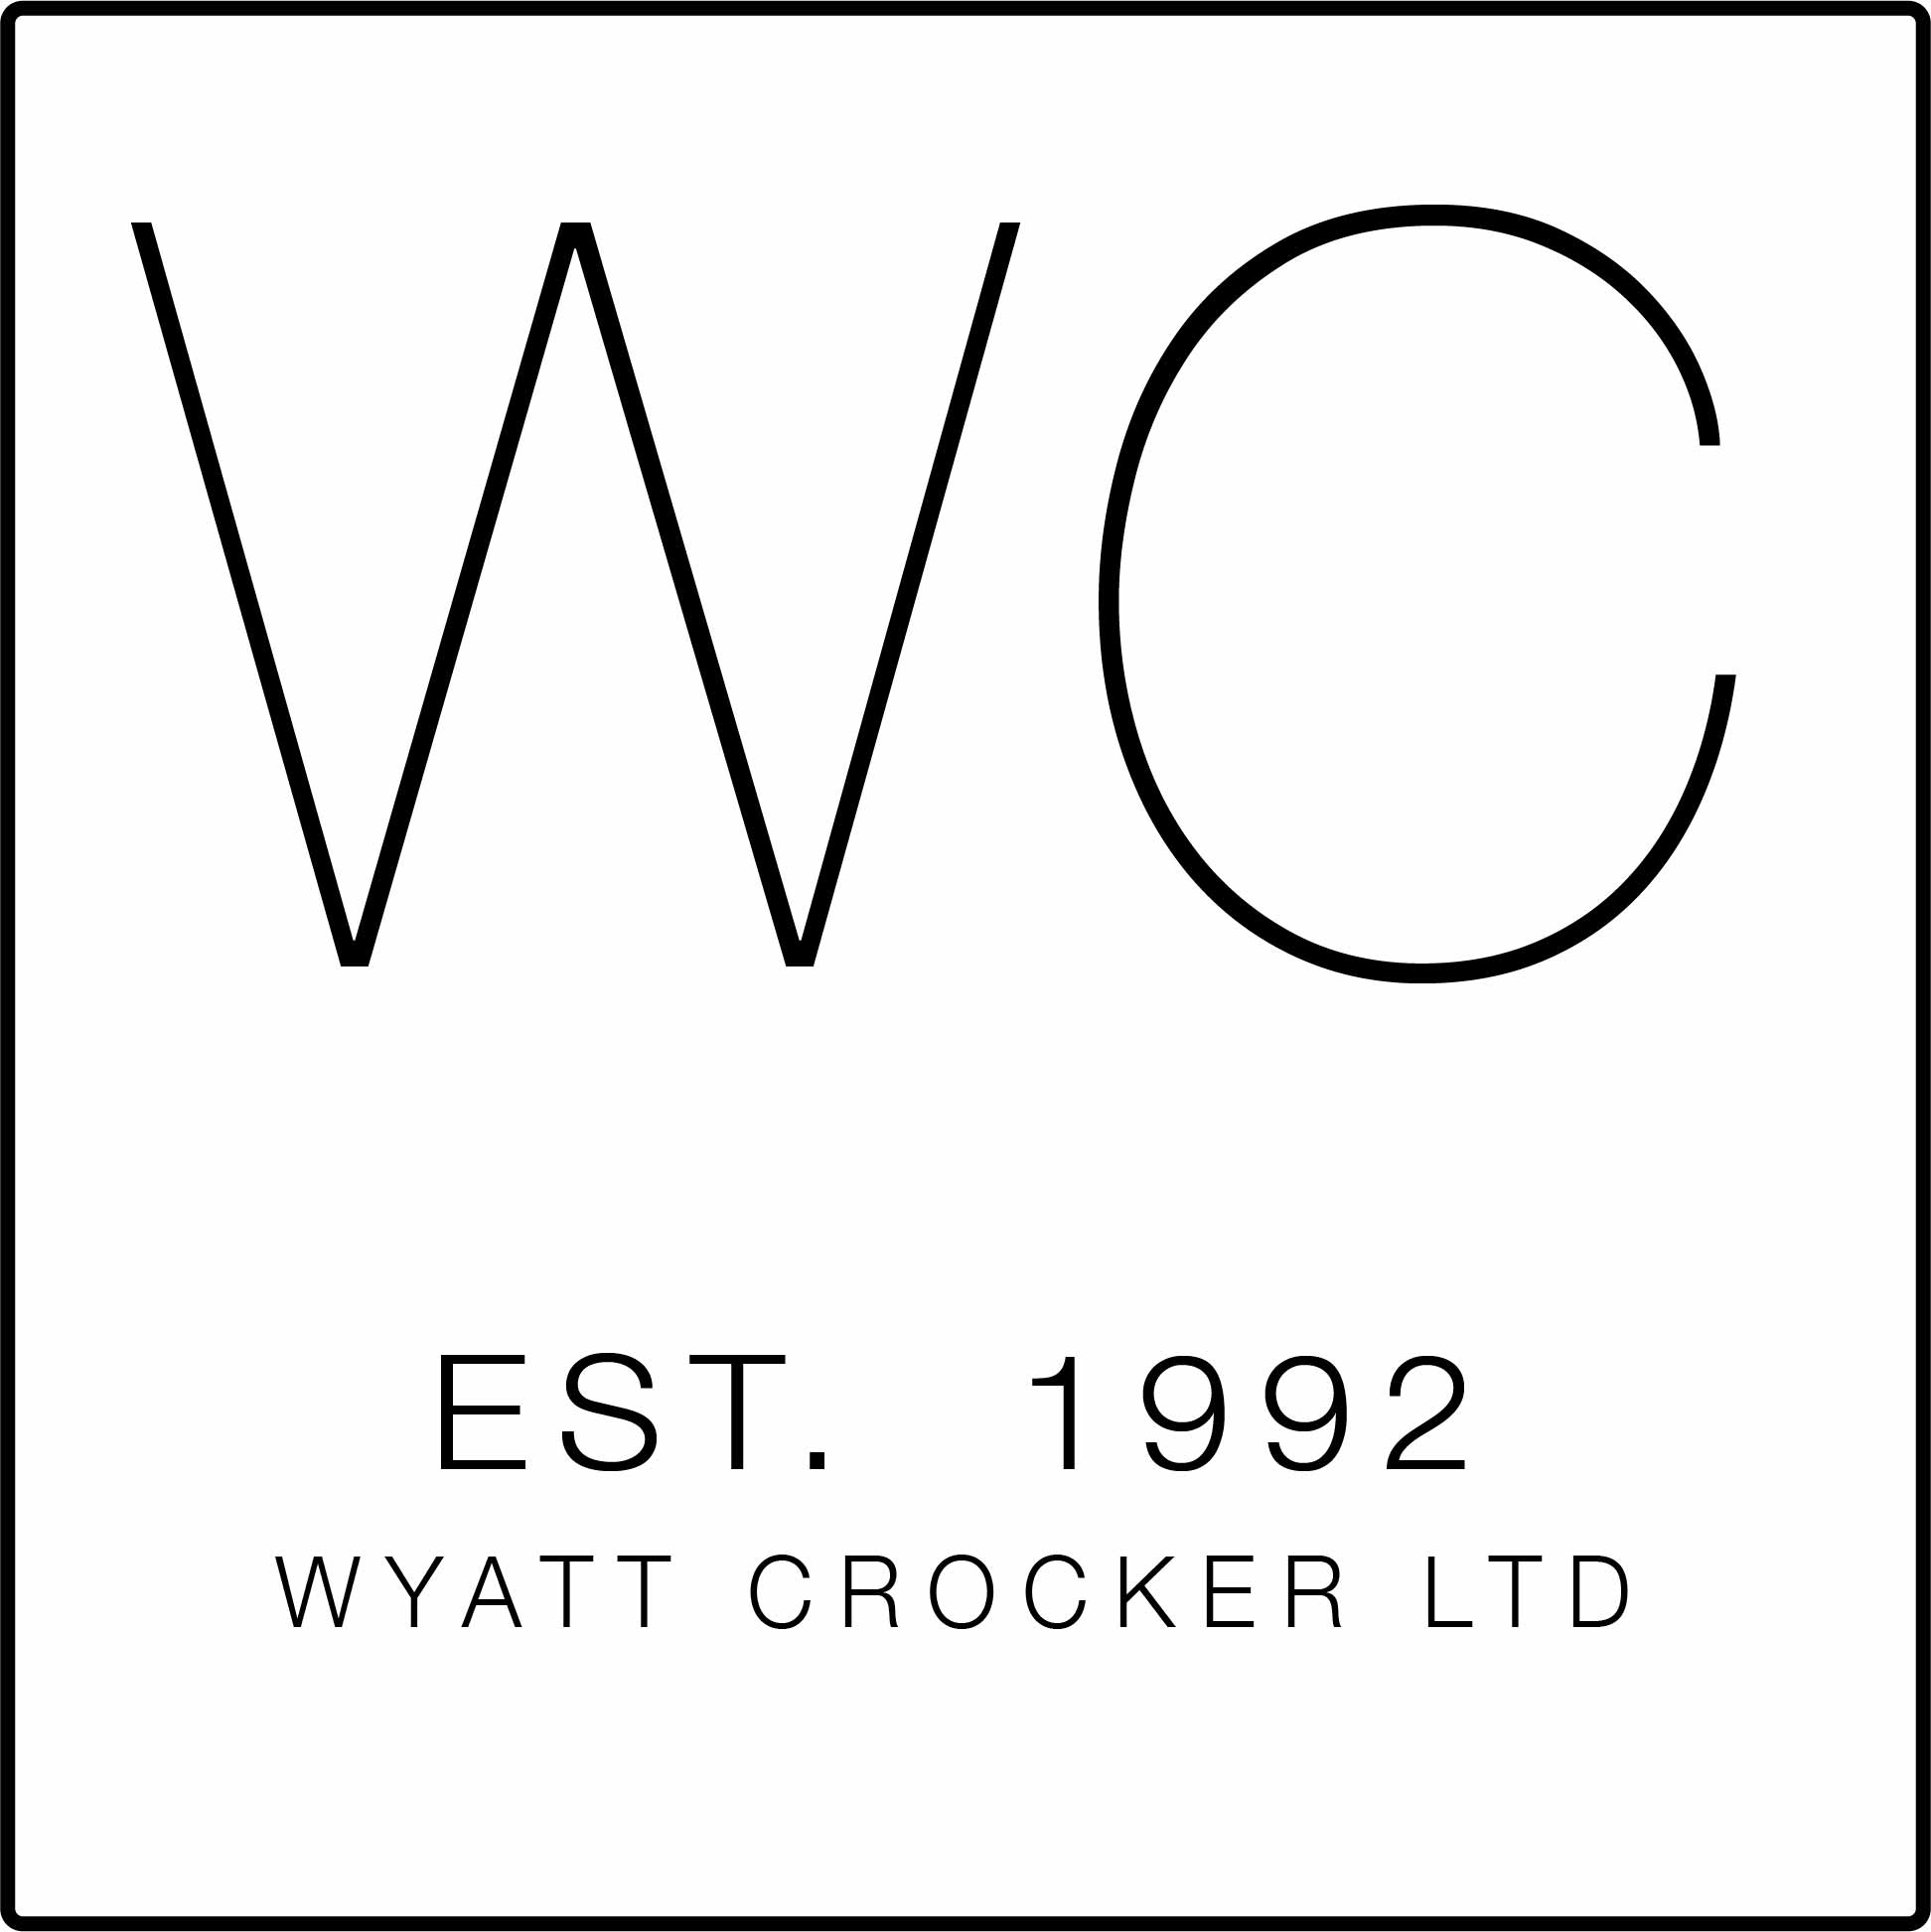 Wyatt Crocker Ltd